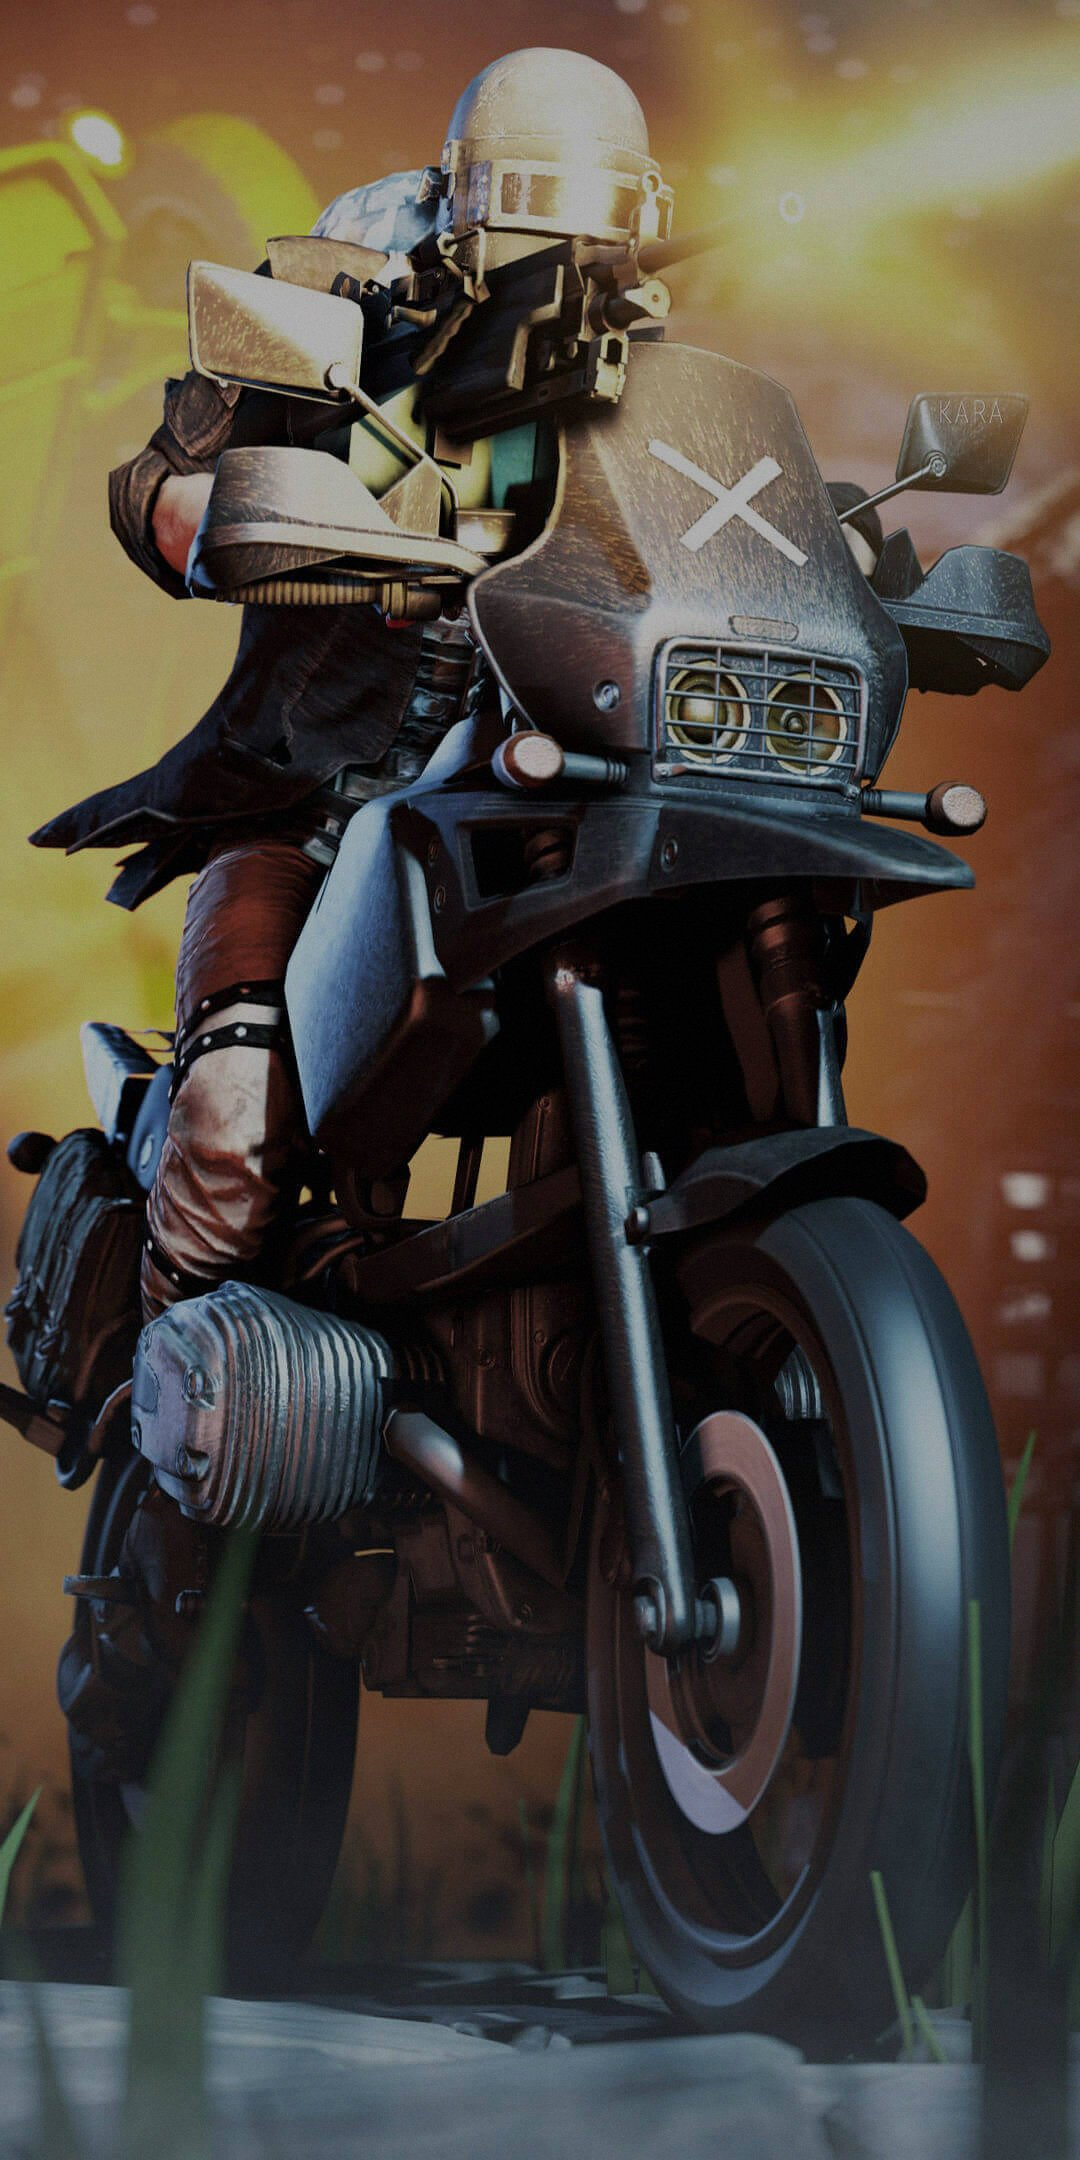 Pubg Mobile Wallpapers: 40 PUBG Wallpapers For Phones (FHD+ / 18:9 Wallpapers